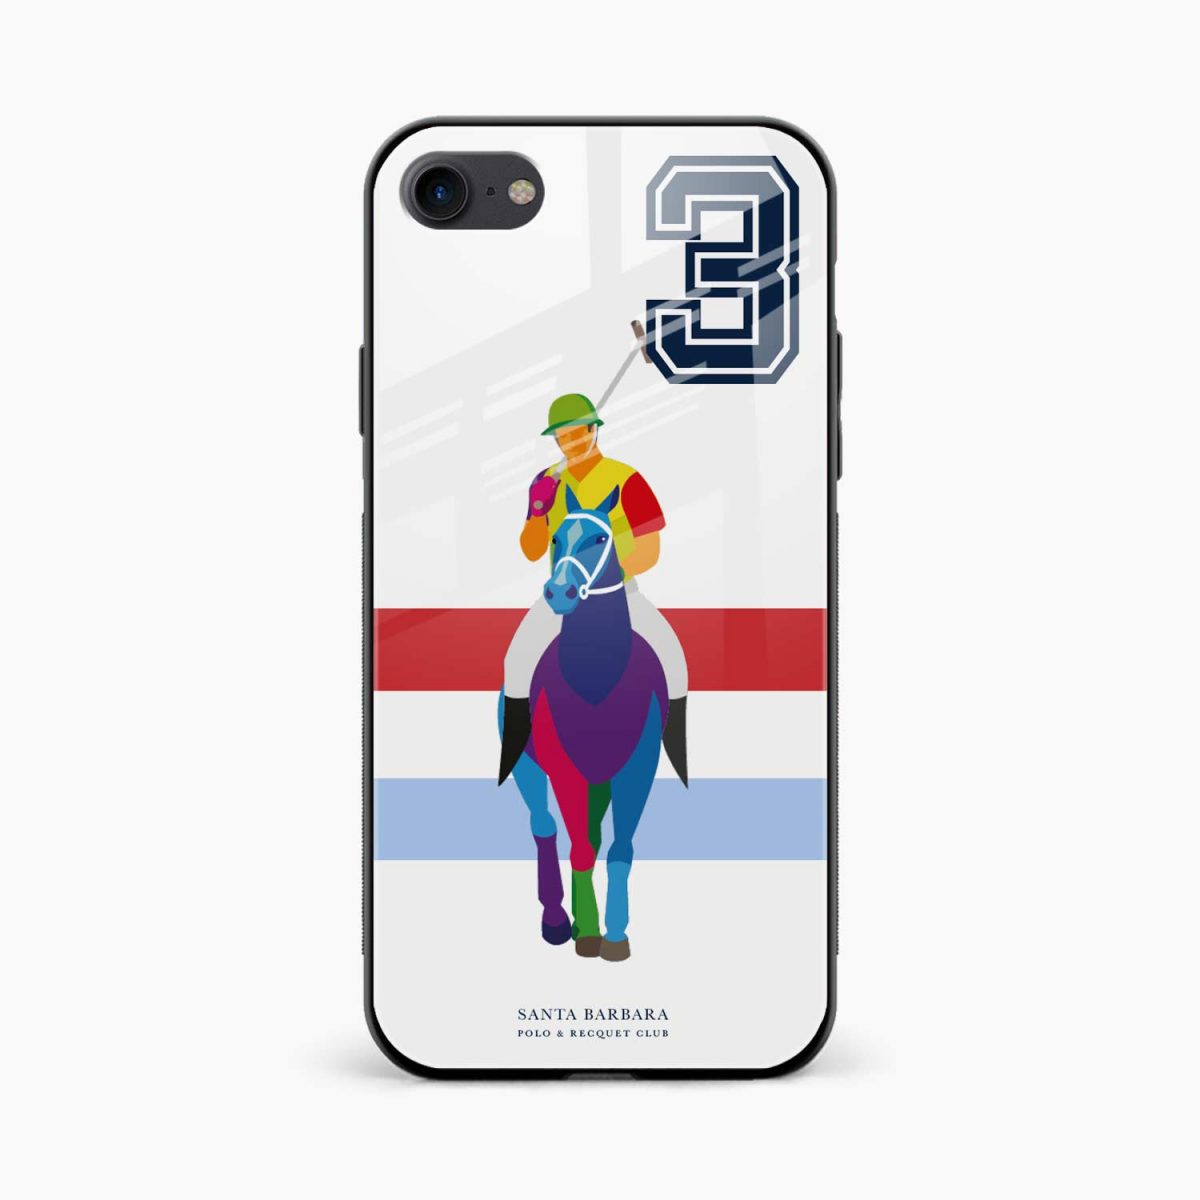 multicolor sant barbara polo front view apple iphone 6 7 8 se back cover